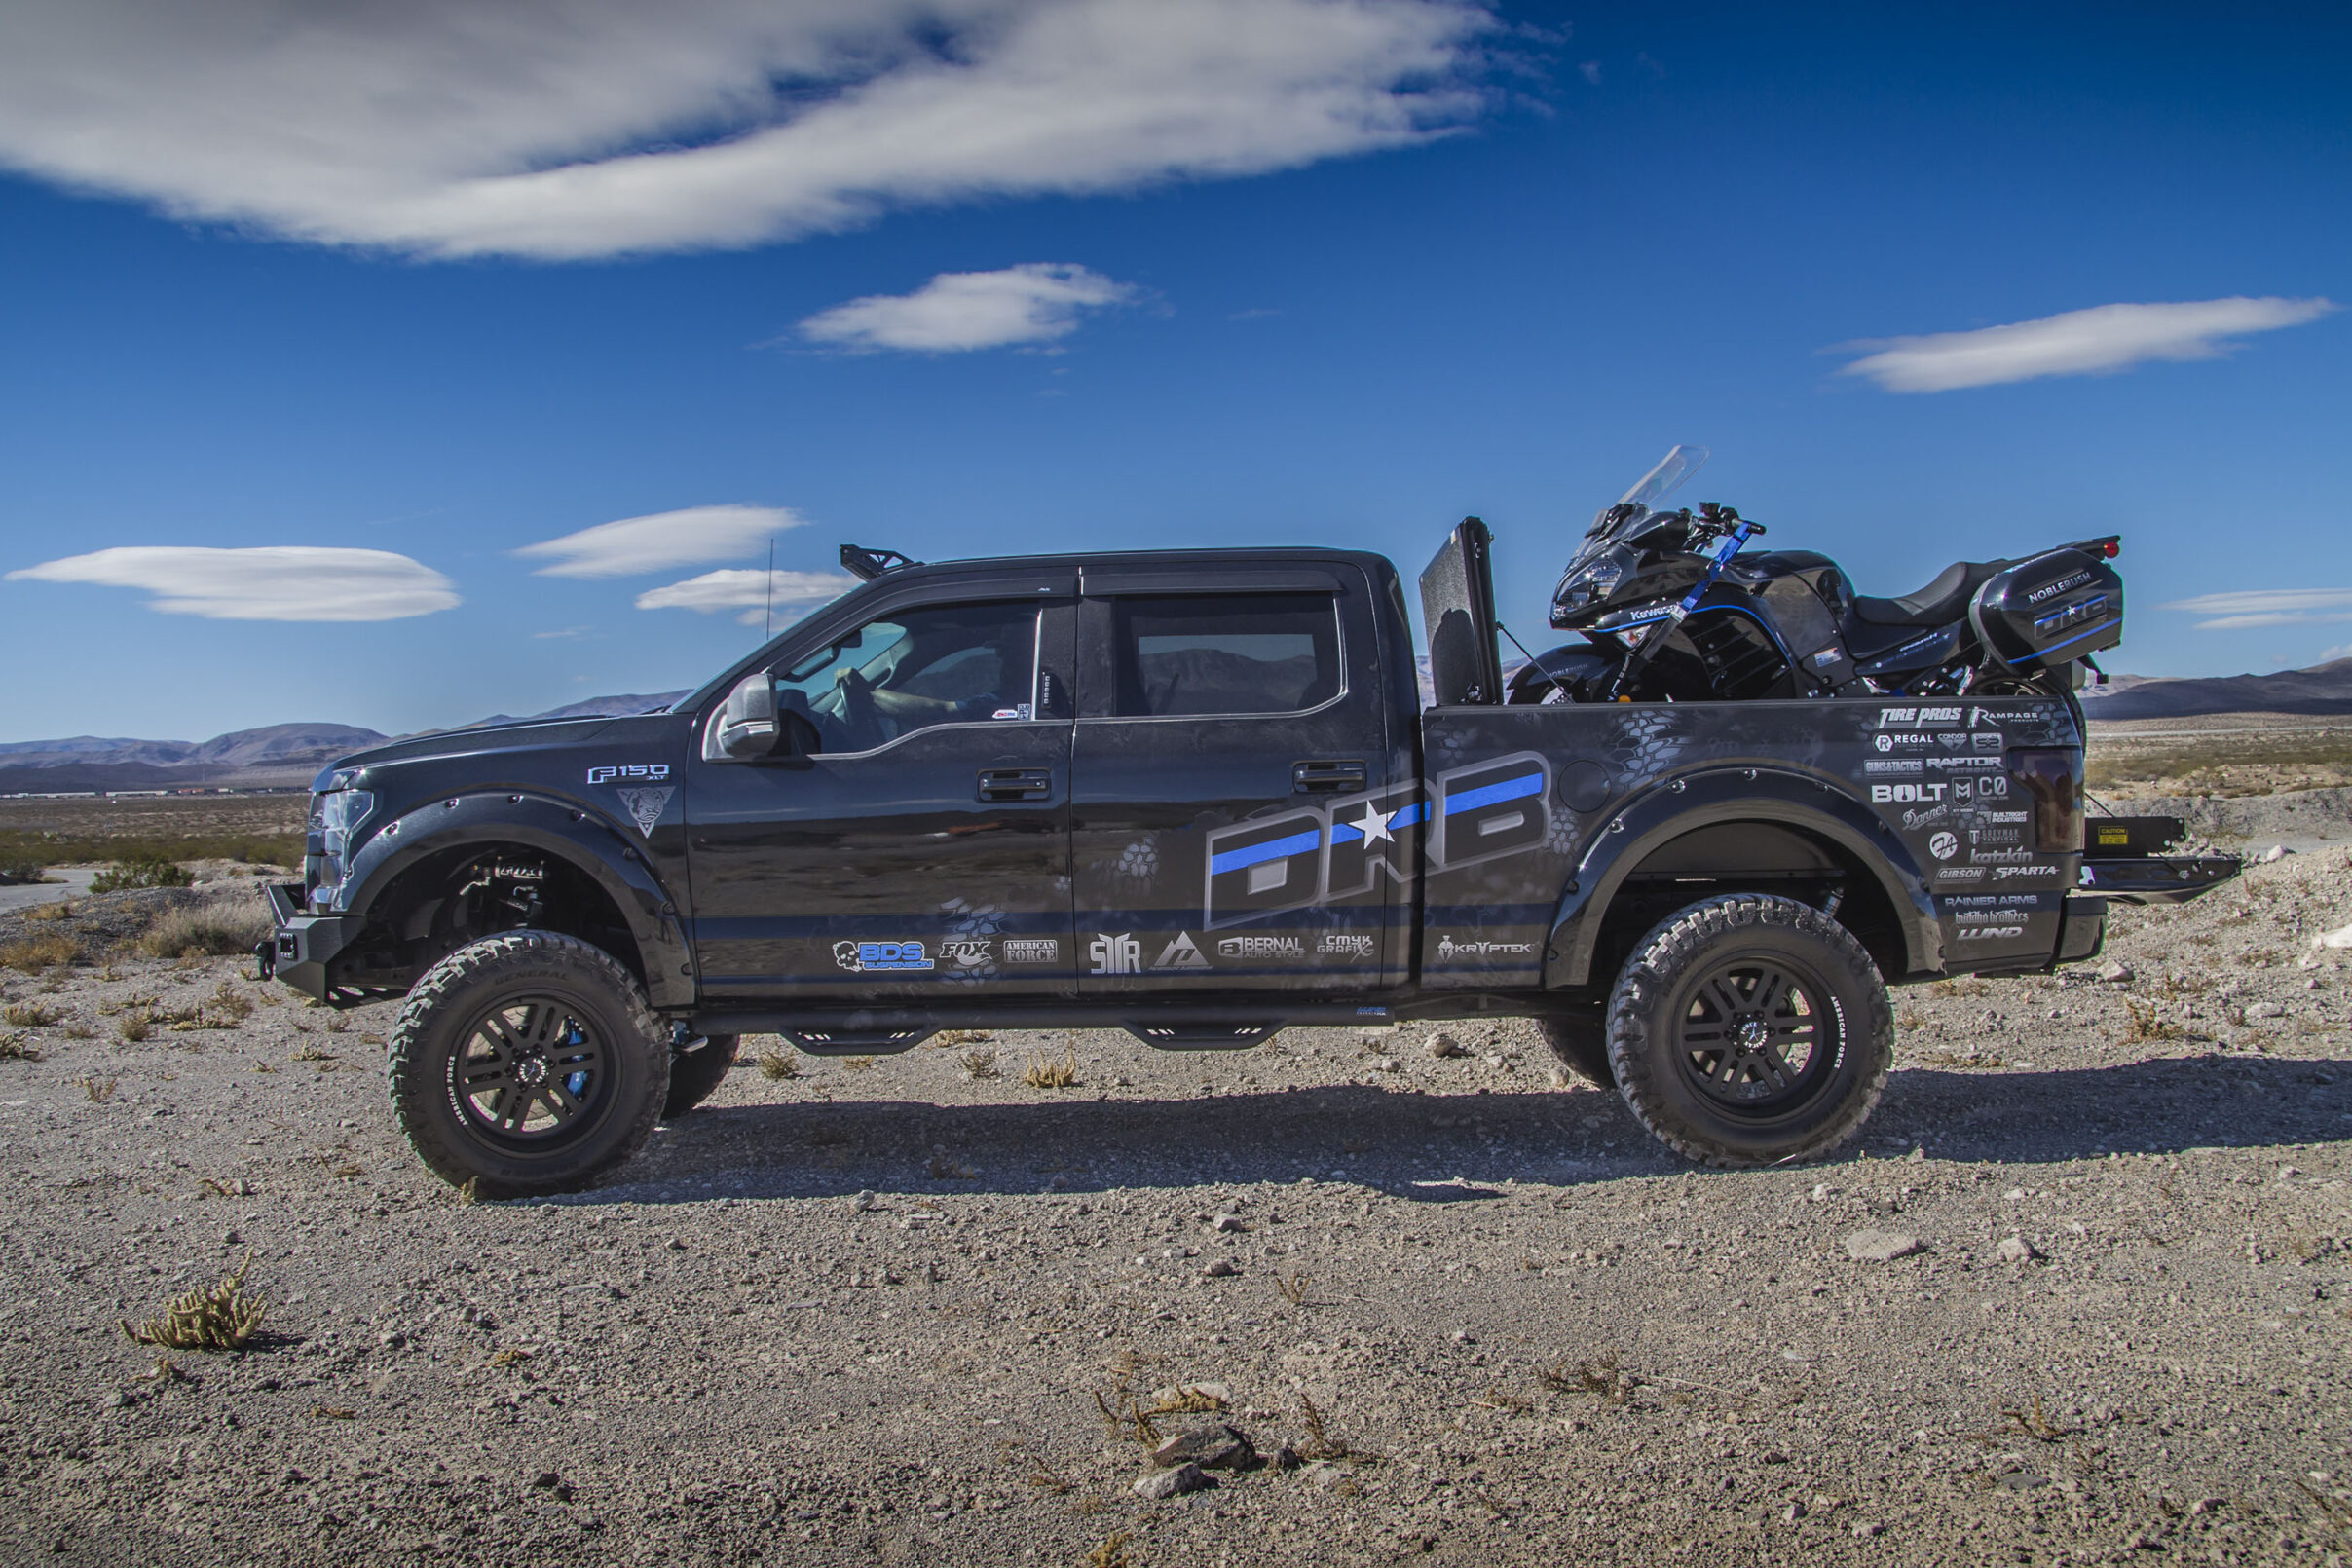 Law Inforcement Ford F150 for PTSD